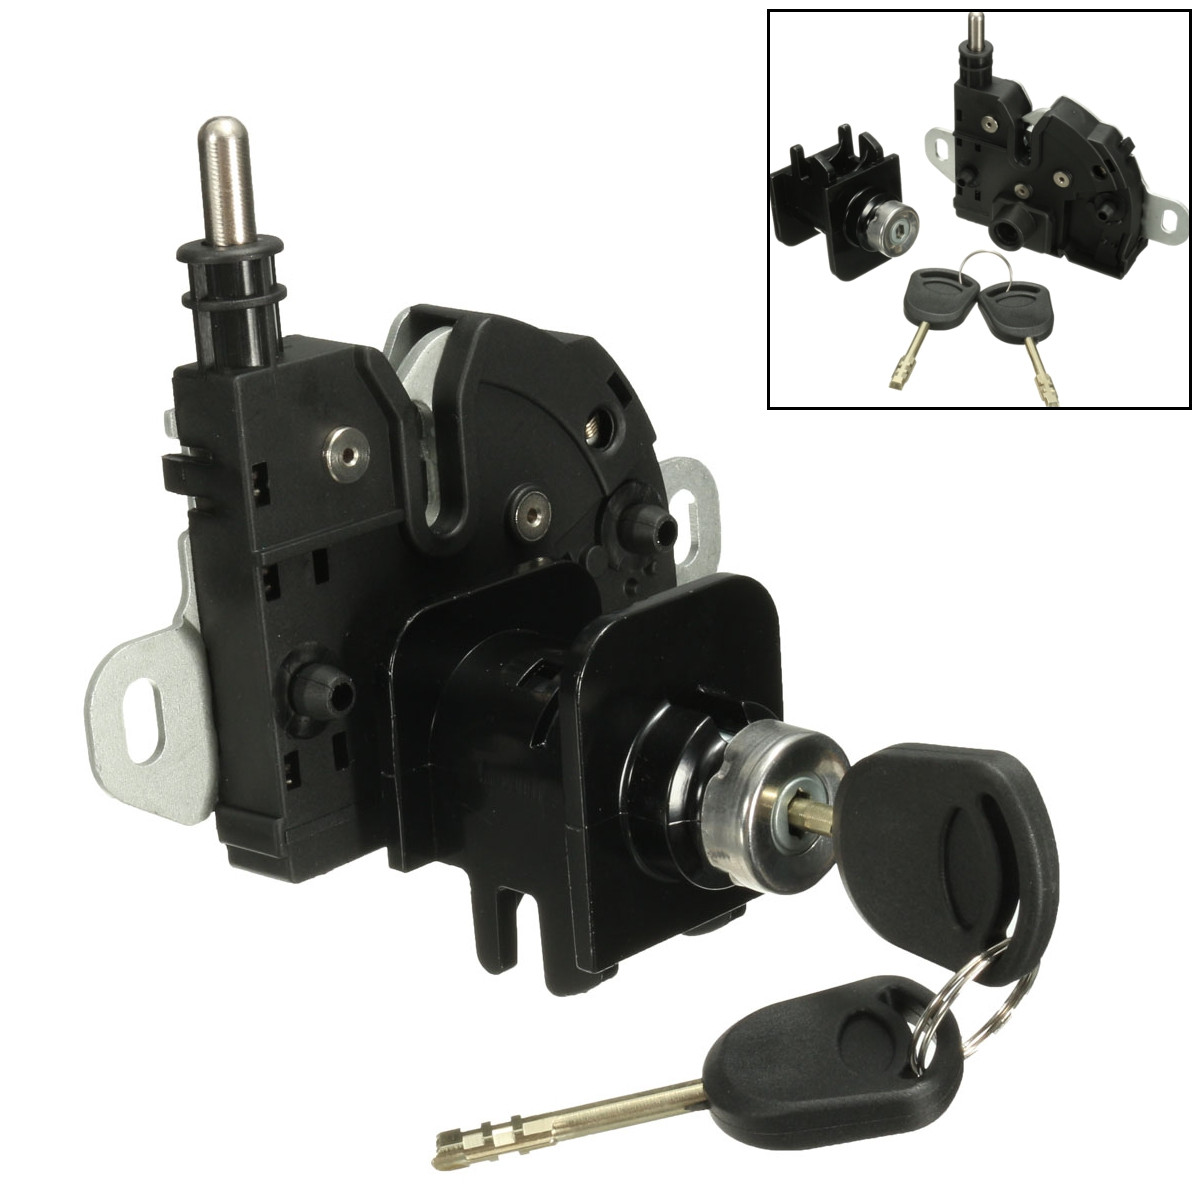 Bonnet Hood Lock Latch with 2 Keys With 2 Keys Set For Ford-Transit-MK6 2000 2001 2002 2003 2004 2005 2006 412428Bonnet Hood Lock Latch with 2 Keys With 2 Keys Set For Ford-Transit-MK6 2000 2001 2002 2003 2004 2005 2006 412428